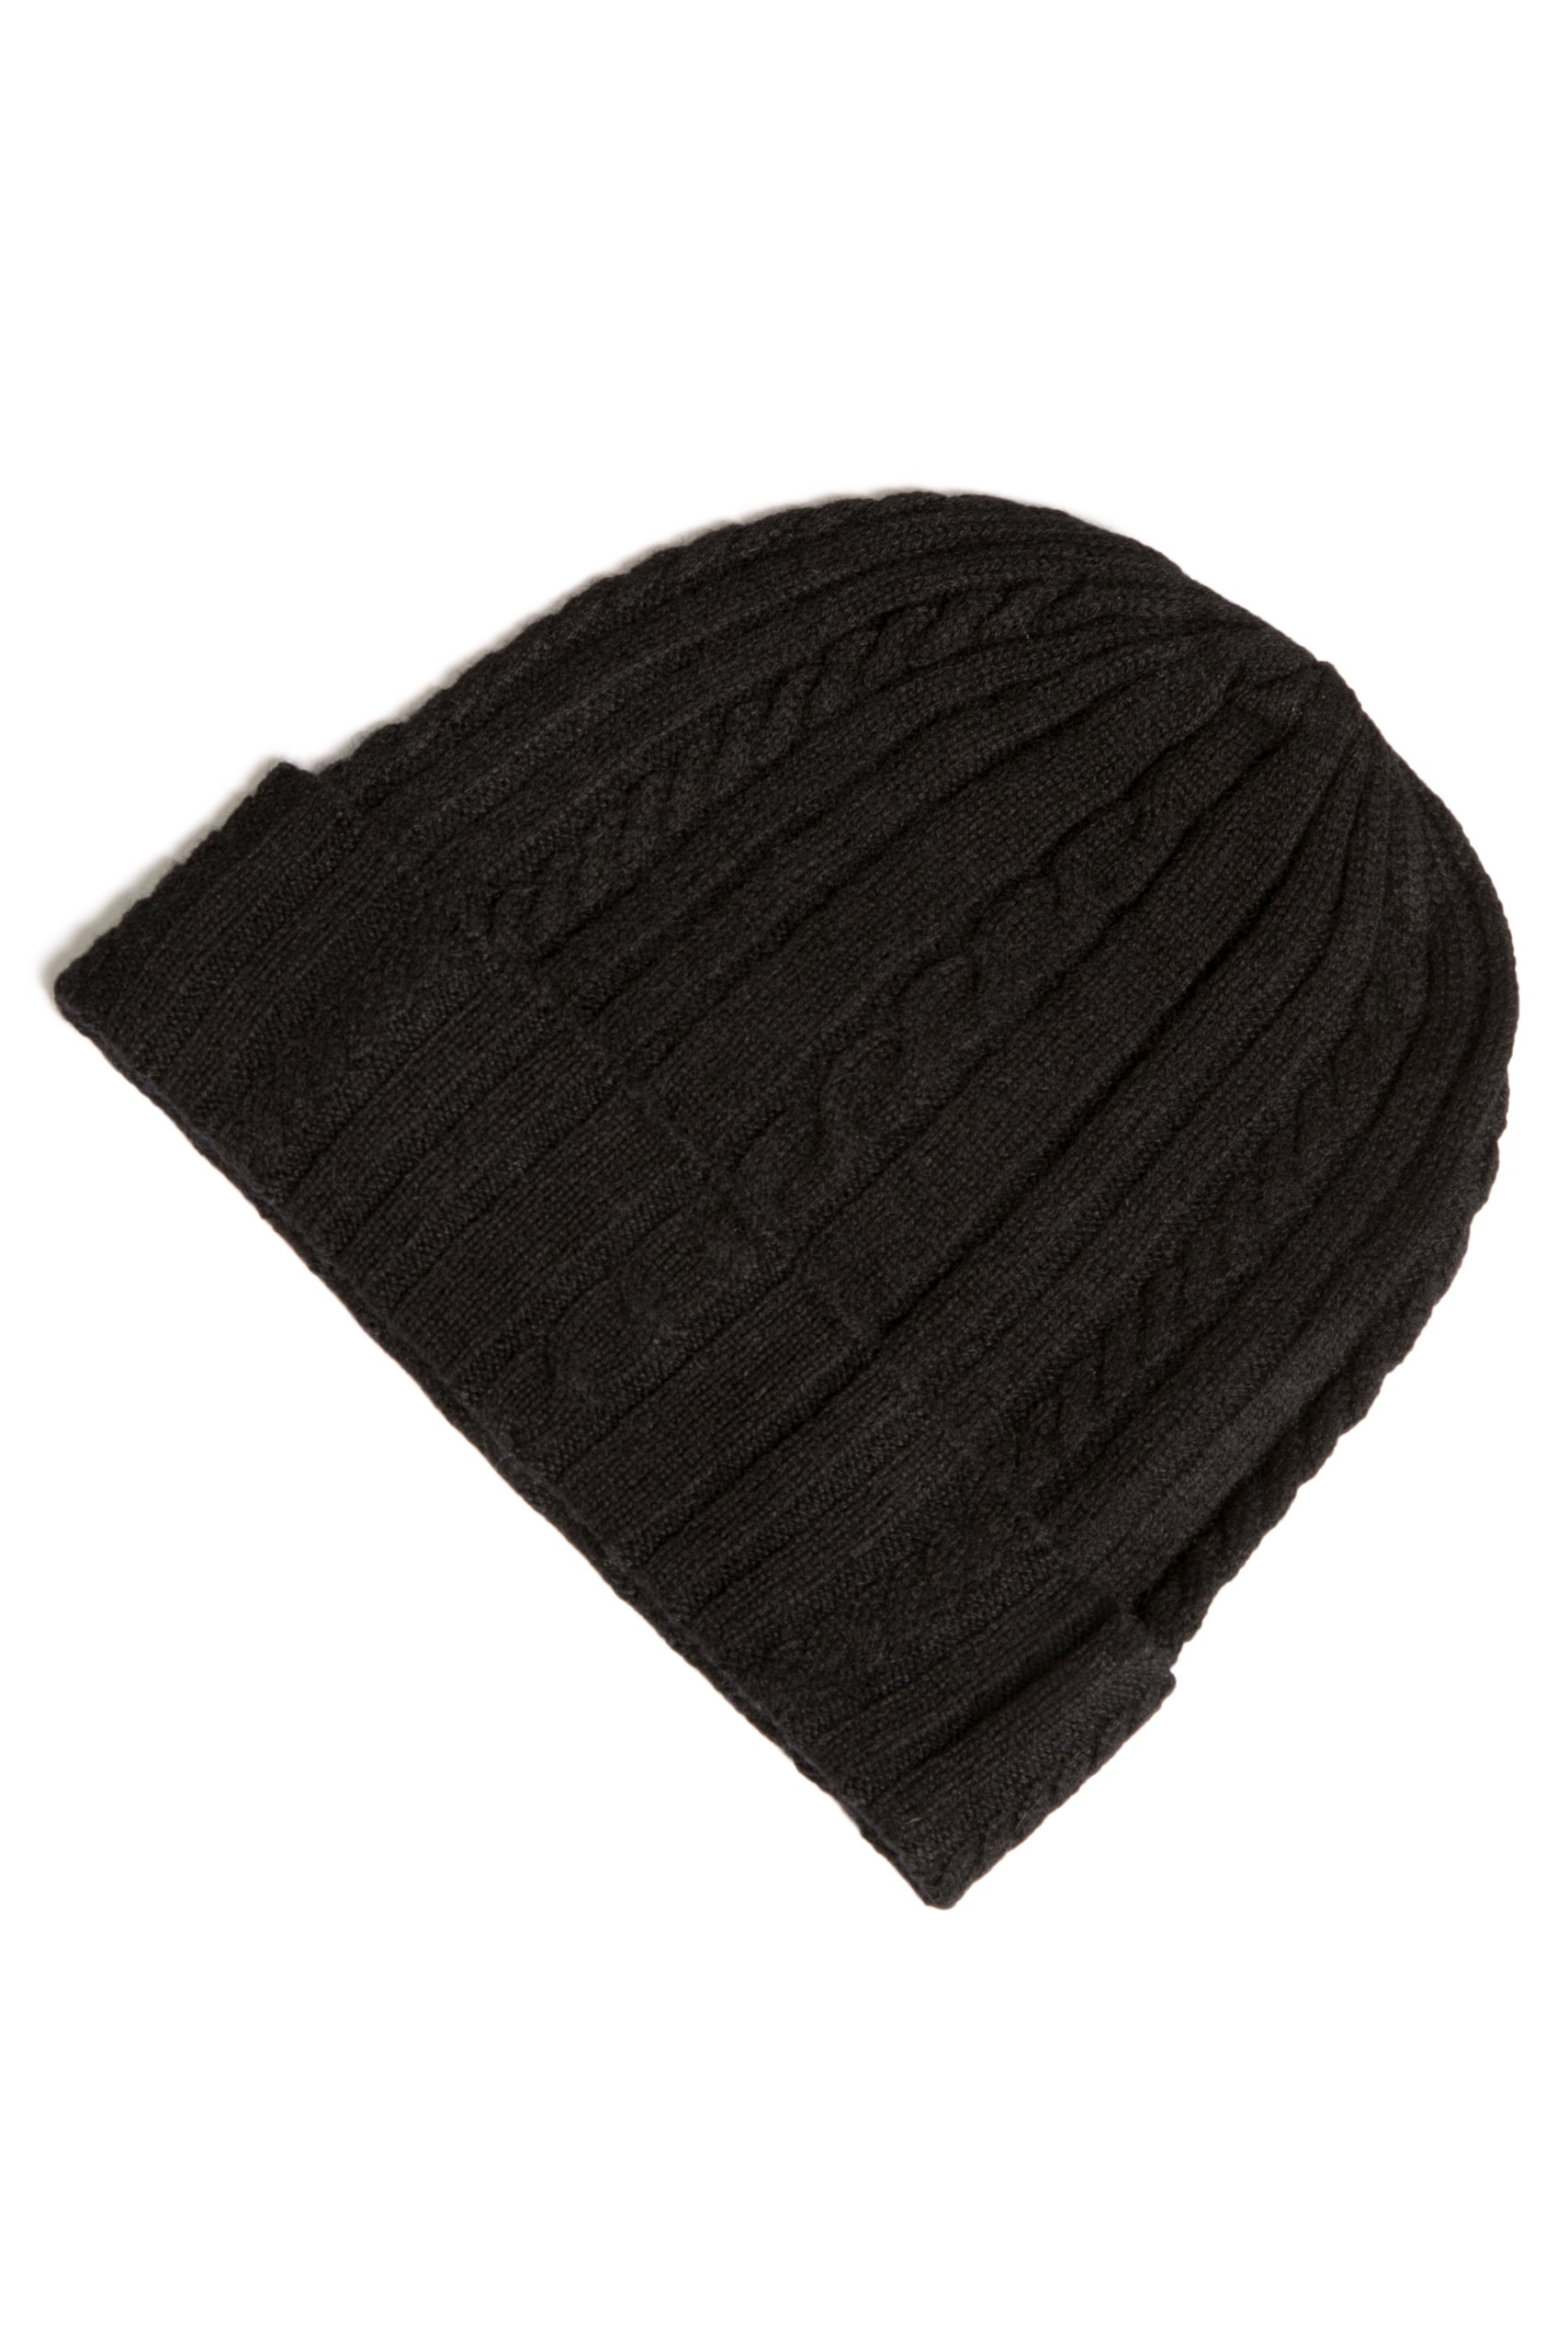 Fishers Finery Women's 100% Pure Cashmere Cable Knit Hat Super Soft Cuffed Black by Fishers Finery